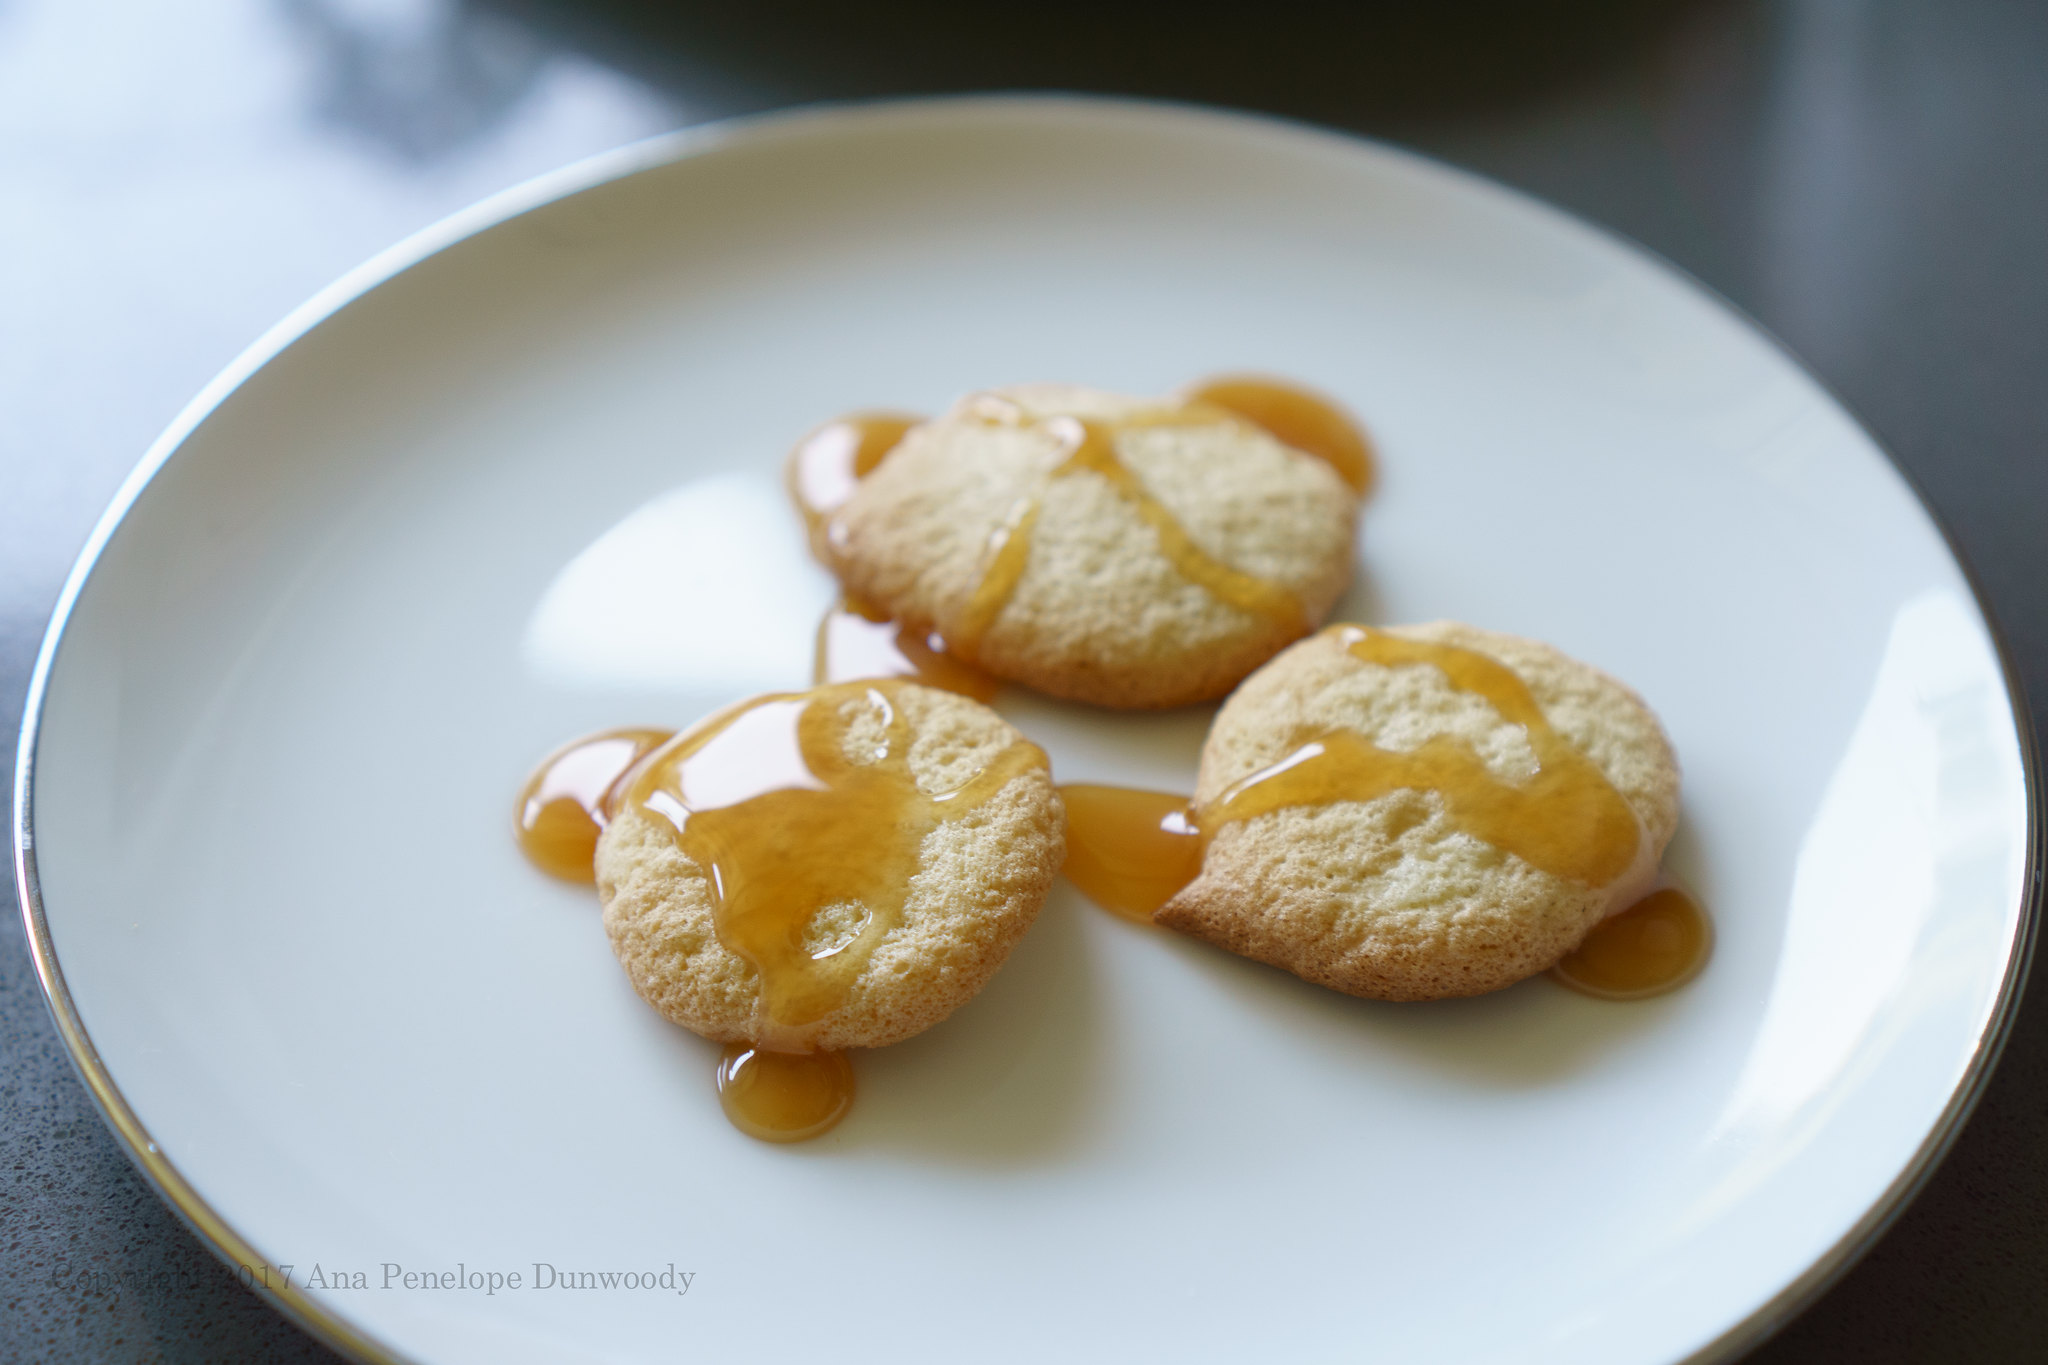 Sponge Drops with Caramel Sauce